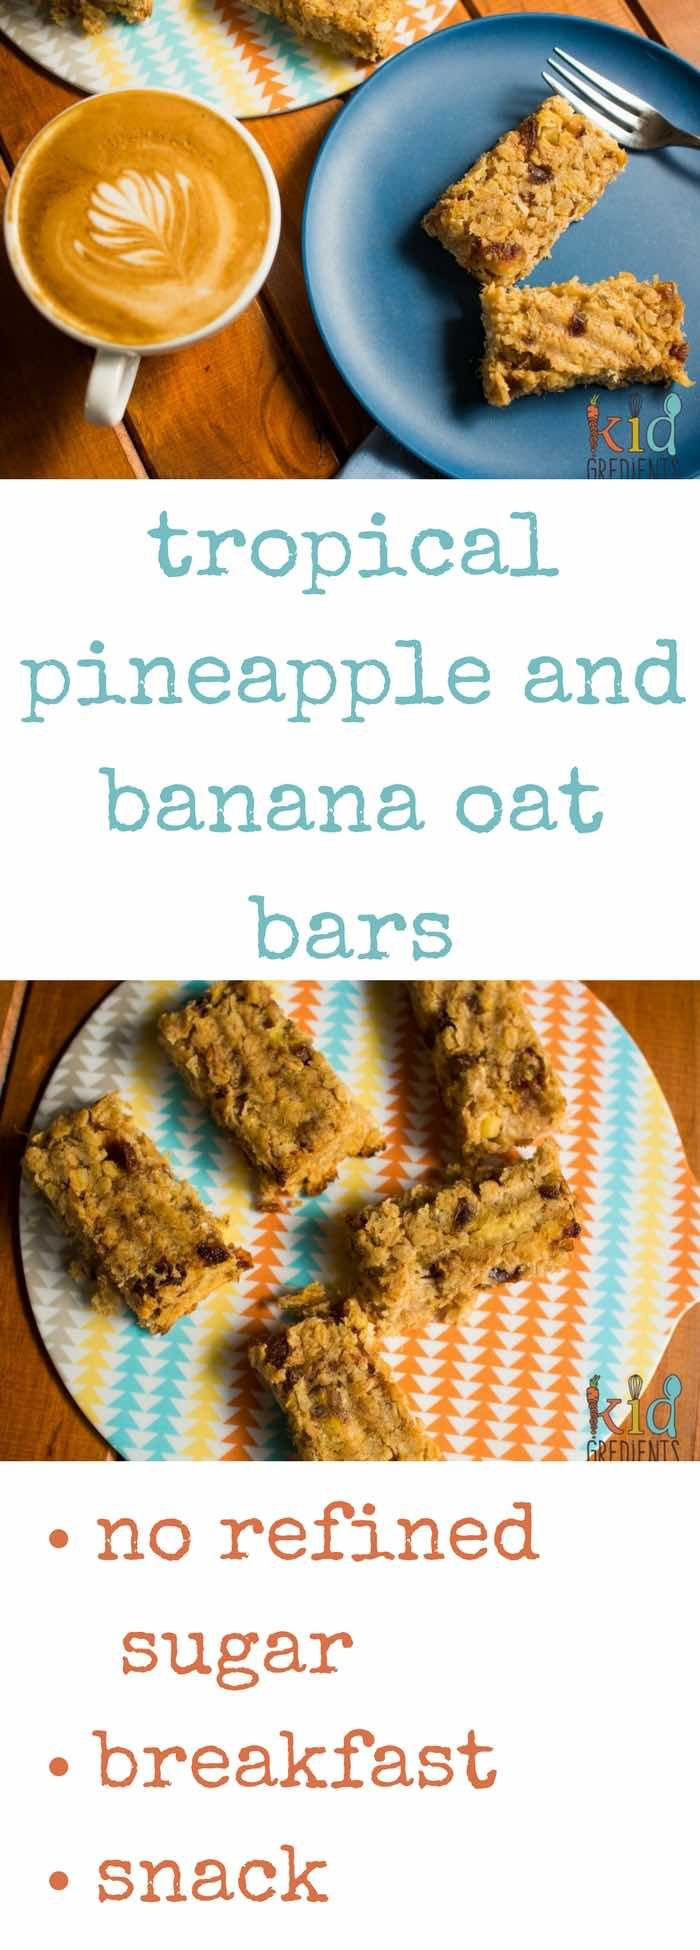 Tropical banana and pineapple oat bars: dairy free, egg free and refined sugar free. The perfect make-and-freeze recipe for breakfast or lunches!